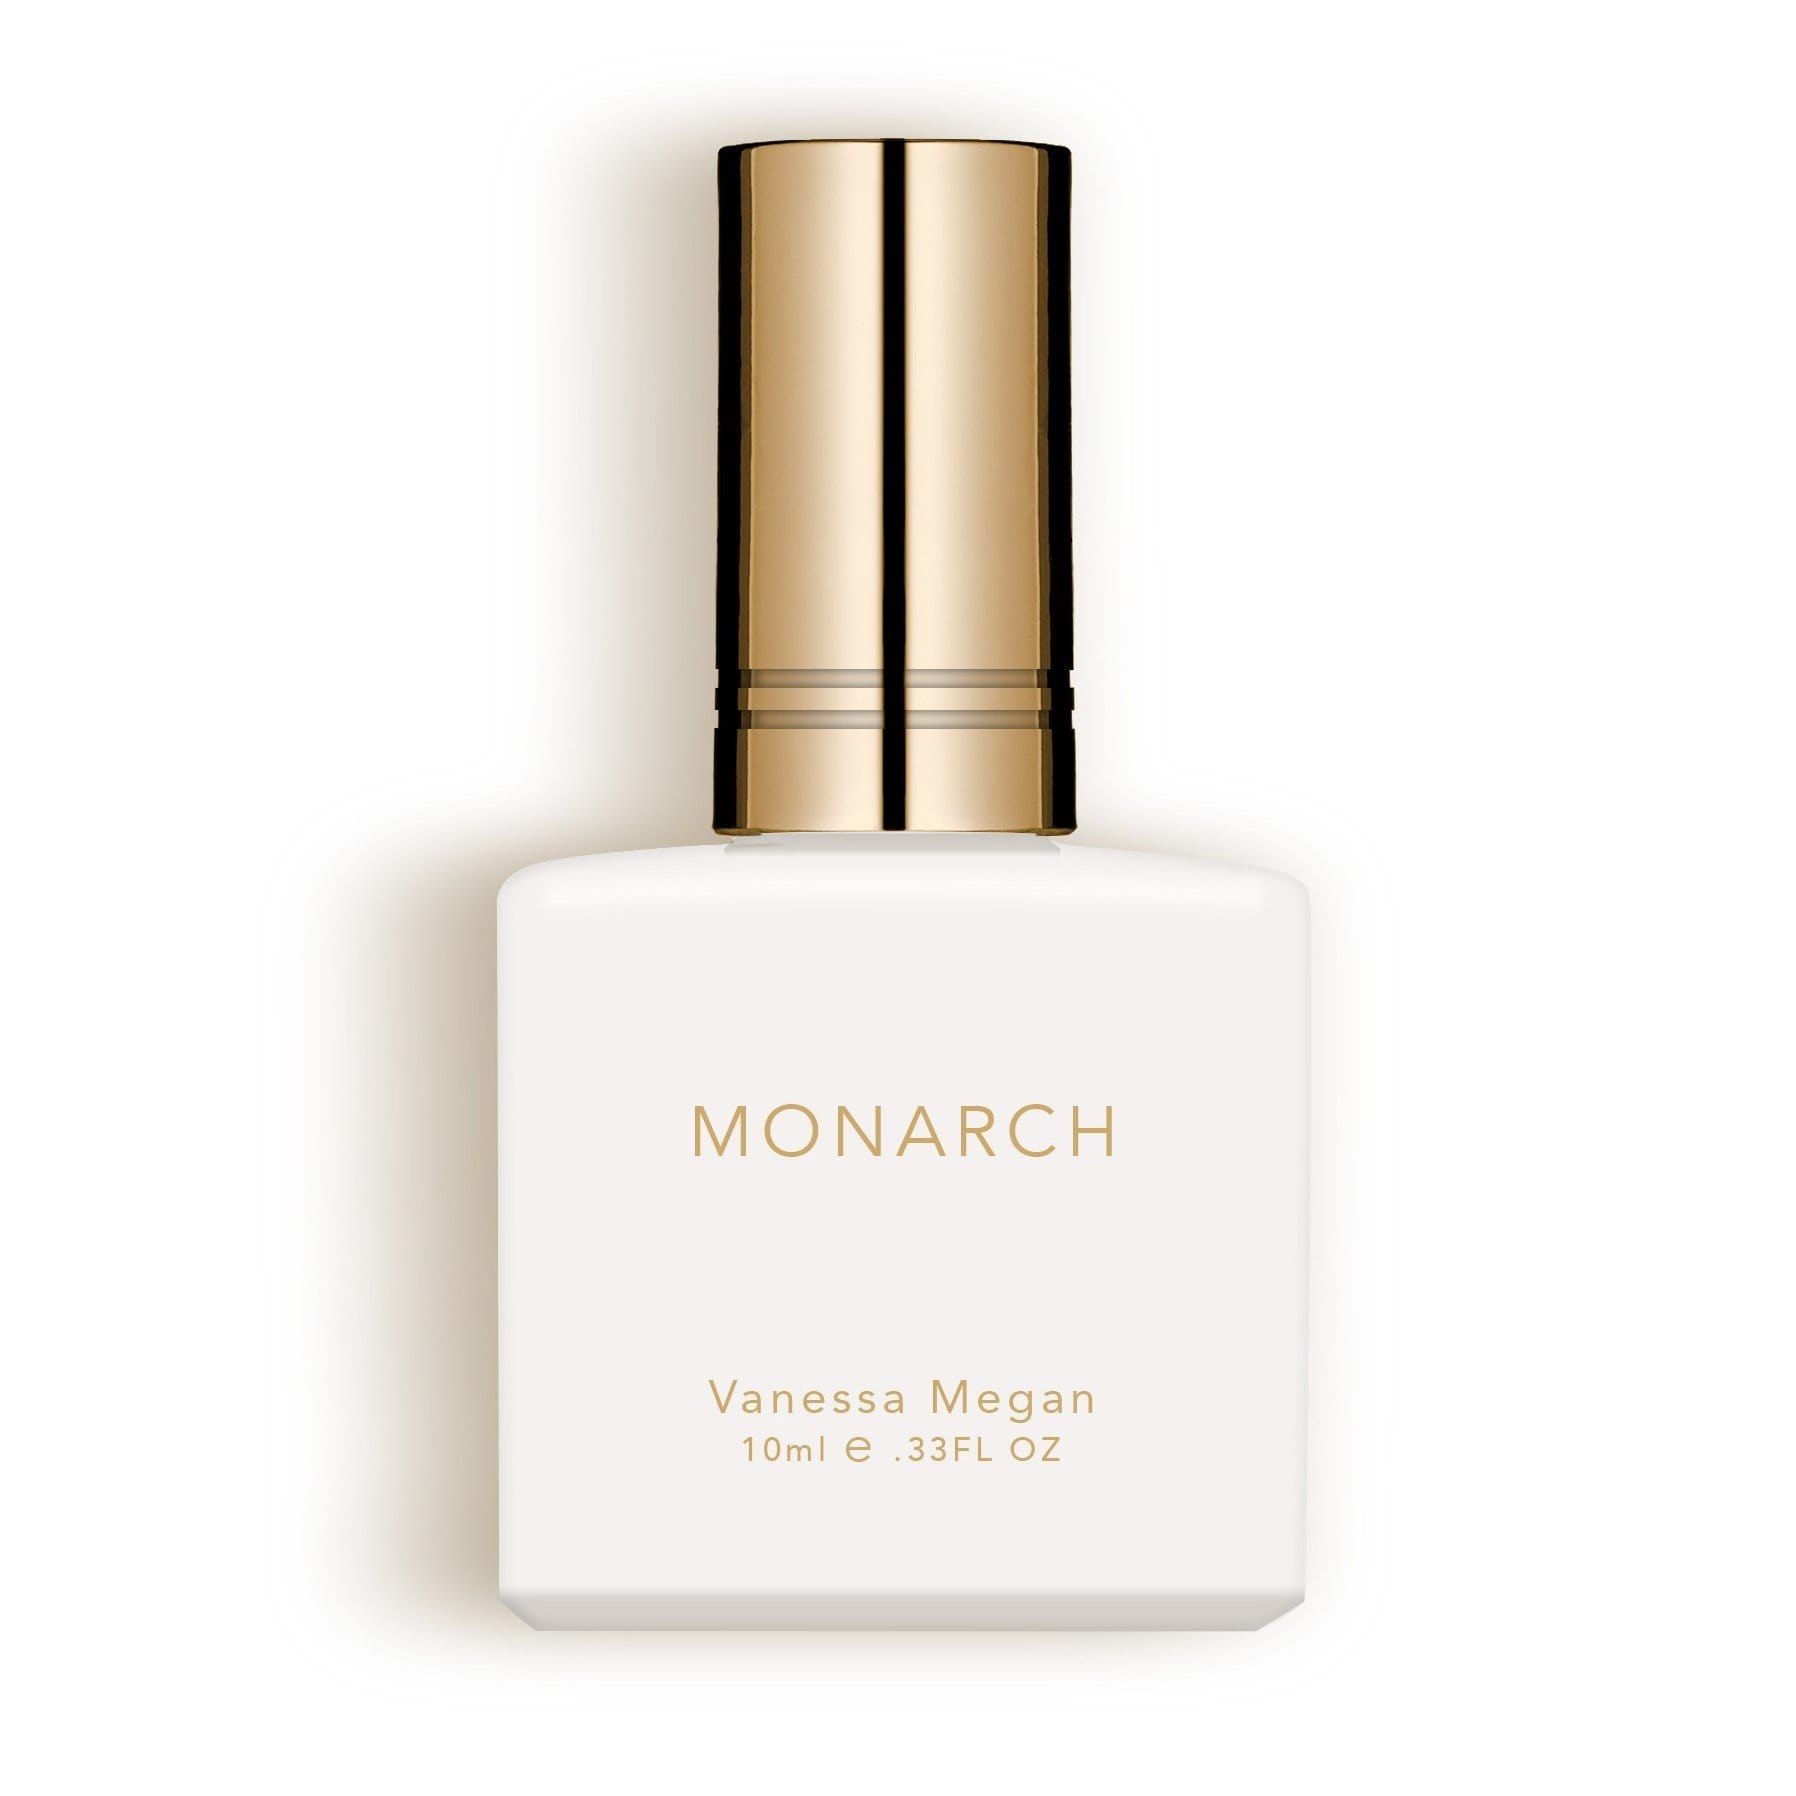 Vanessa Megan 100% Natural Perfume, Monarch